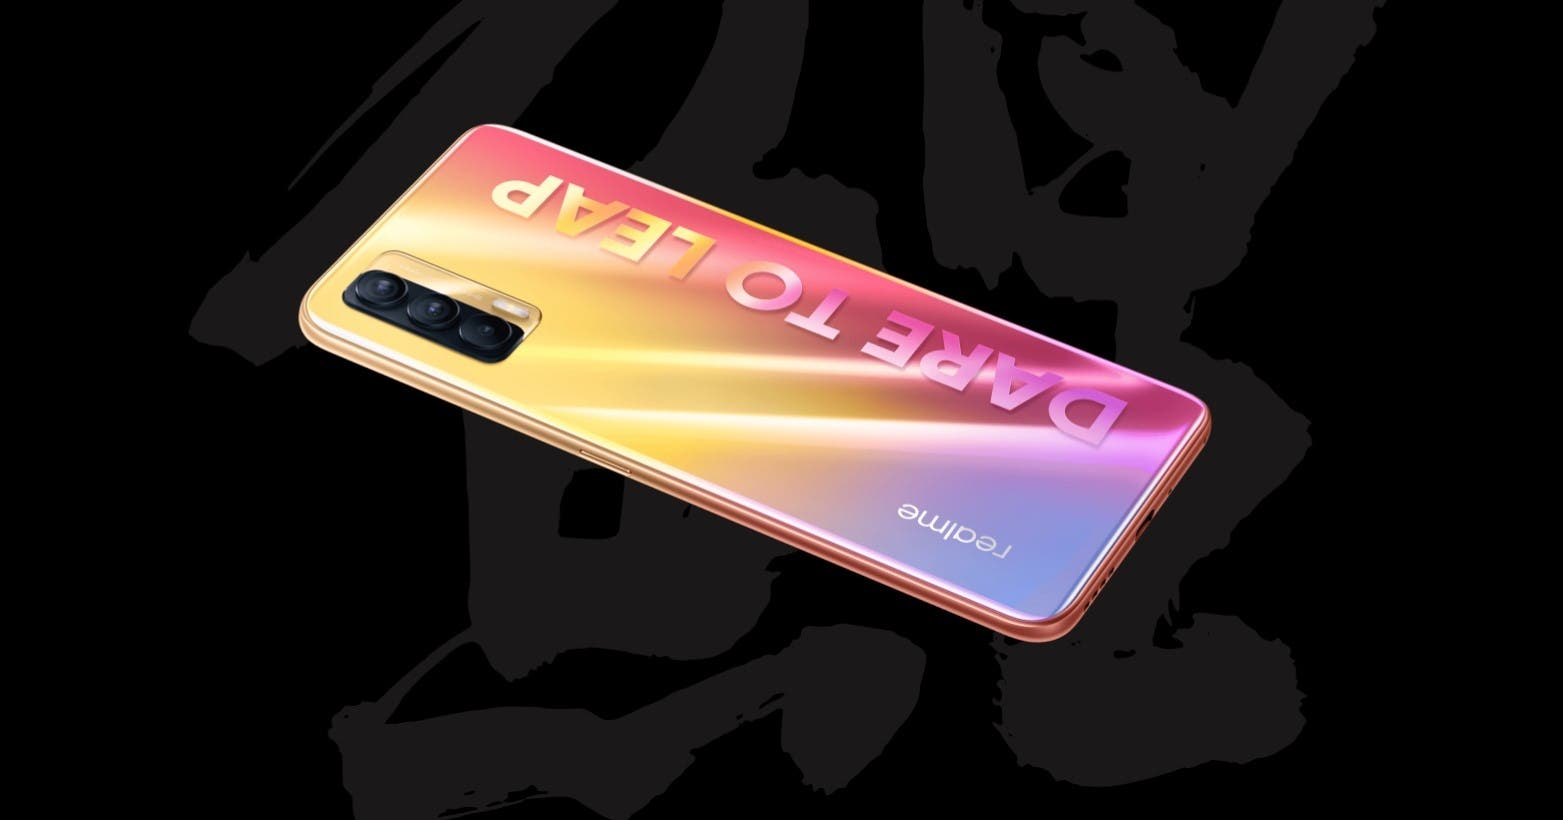 Realme X9 Pro Tipped to Include 90Hz Refresh Rate Display, 108MP Camera; Here're are All the Leaked Specs